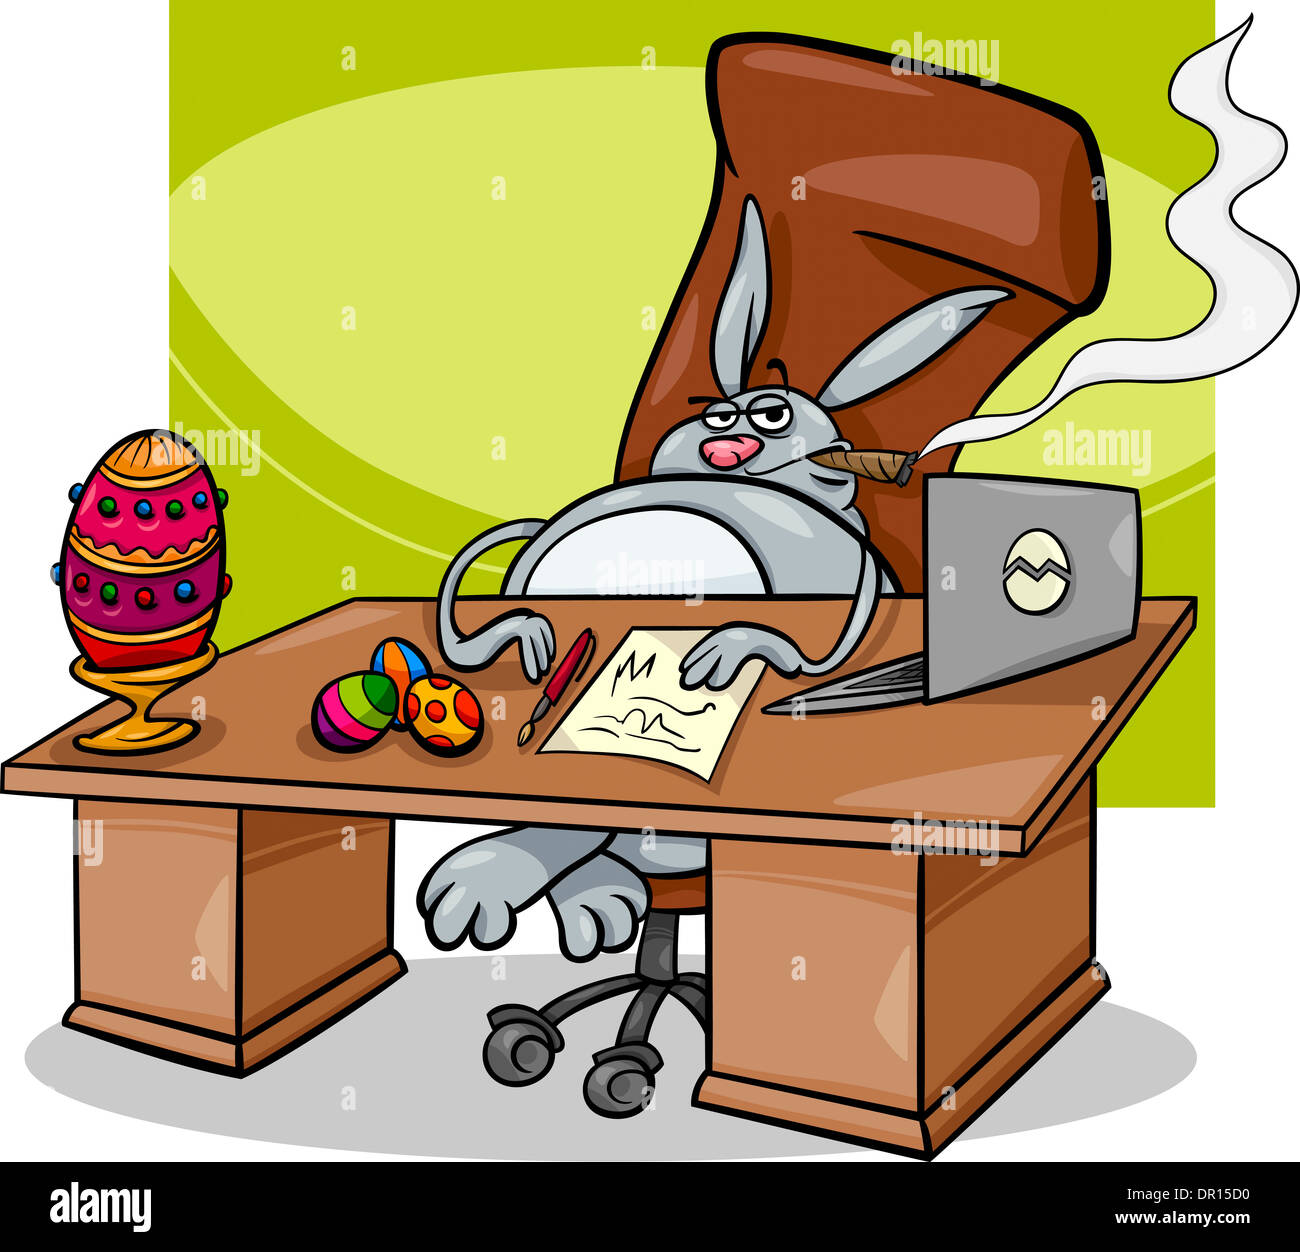 Cartoon Concept Humor Illustration Of Funny Easter Bunny Businessman